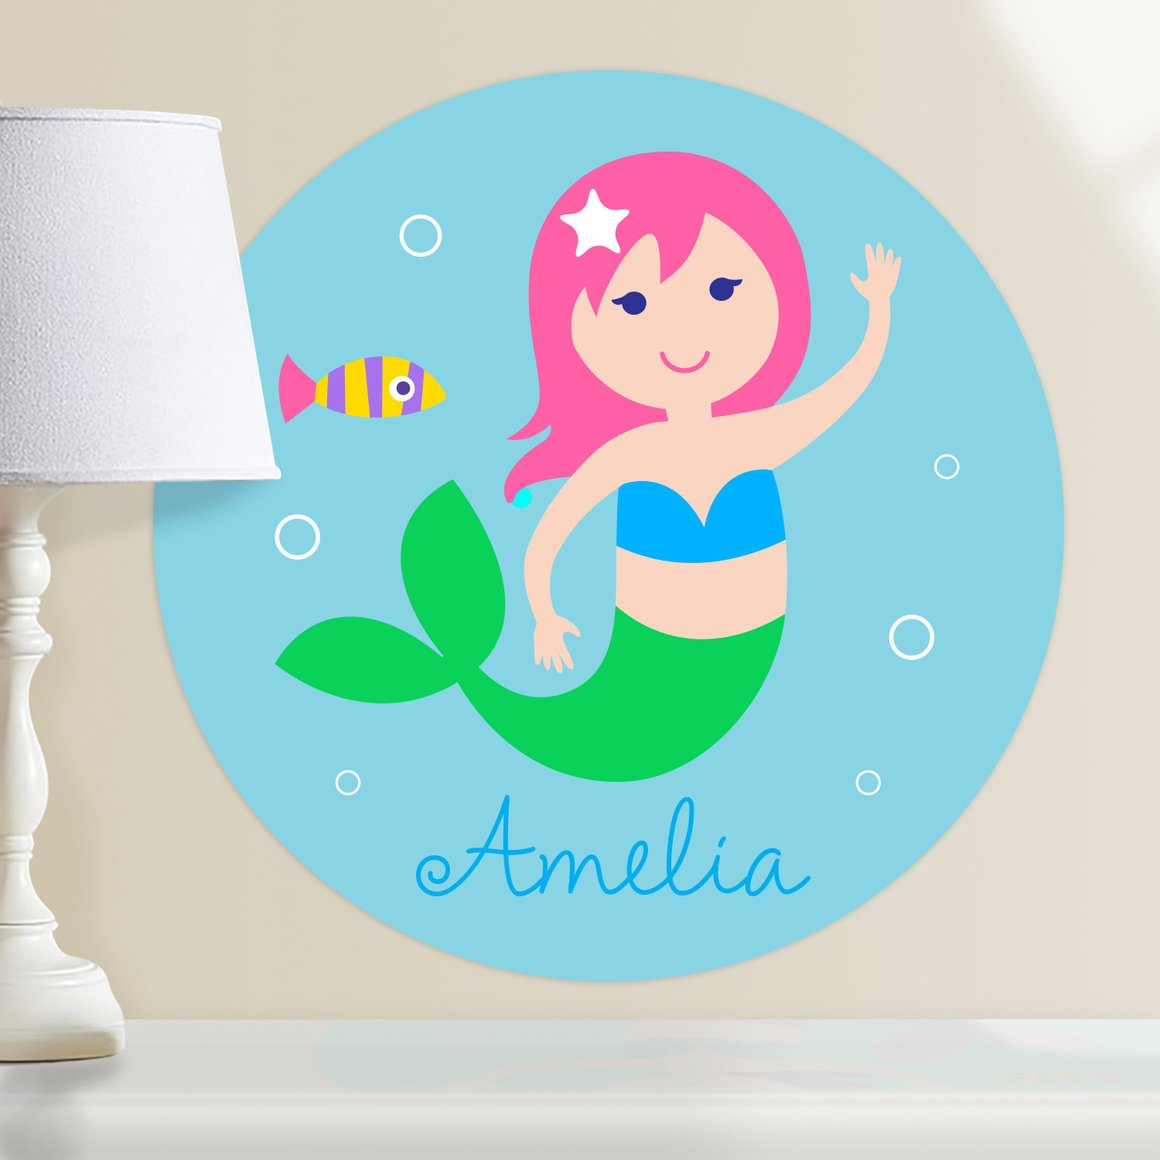 Mermaids (Light Skin, Pink Hair) Personalized Kids Wall Dotz Decal